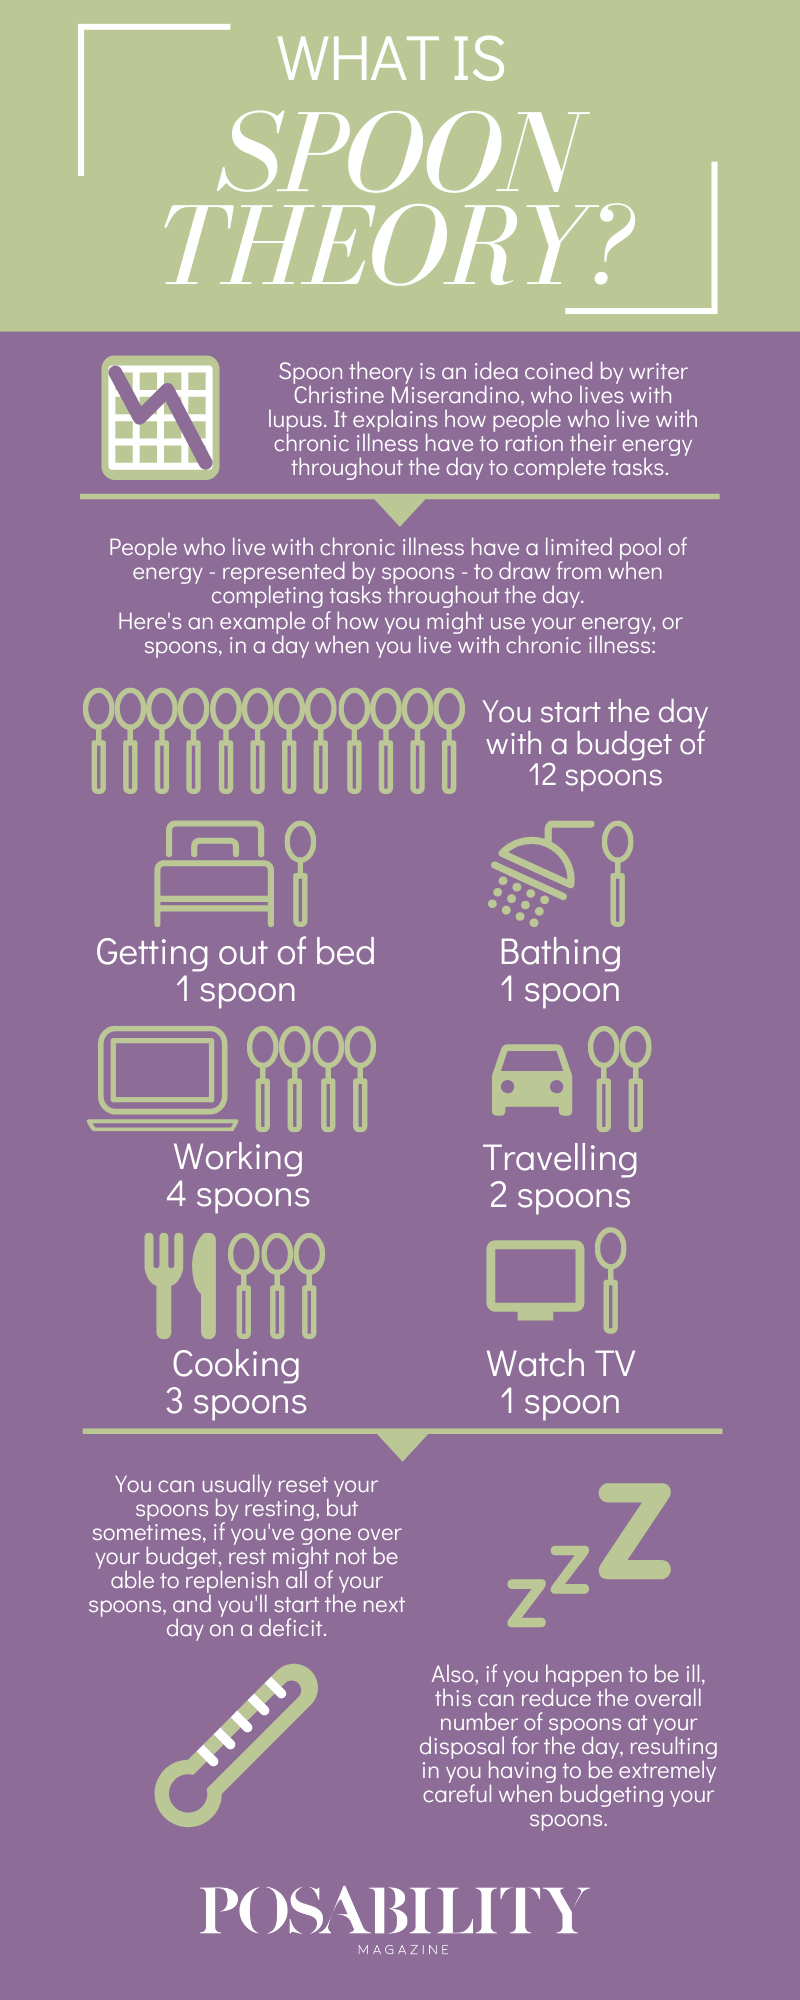 What is spoon theory? Spoon theory is an idea coined by writer Christine Miserandino, who lives with lupus. It explains how people who live with chronic illness have to ration their energy throughout the day to complete tasks. People who live with chronic illness have a limited pool of energy - represented by spoons - to draw from when completing tasks throughout the day. Here's an example of how you might use your energy, or spoons, in a day when you live with chronic illness: you start the day with a budget of 12 spoons. Getting out of bed: 1 spoon. Bathing: 1 spoon. Working: 4 spoons. Travelling: 2 spoons. Cooking: 3 spoons. Watch TV: 1 spoon. You can usually reset your spoons by resting, but sometimes, if you've gone over your budget, rest might not be able to replenish all of your spoons, and you'll start the next day on a deficit. Also, if you happen to be ill, this can reduce the overall number of spoons at your disposal for the day, resulting in you having to be extremely careful when budgeting your spoons.